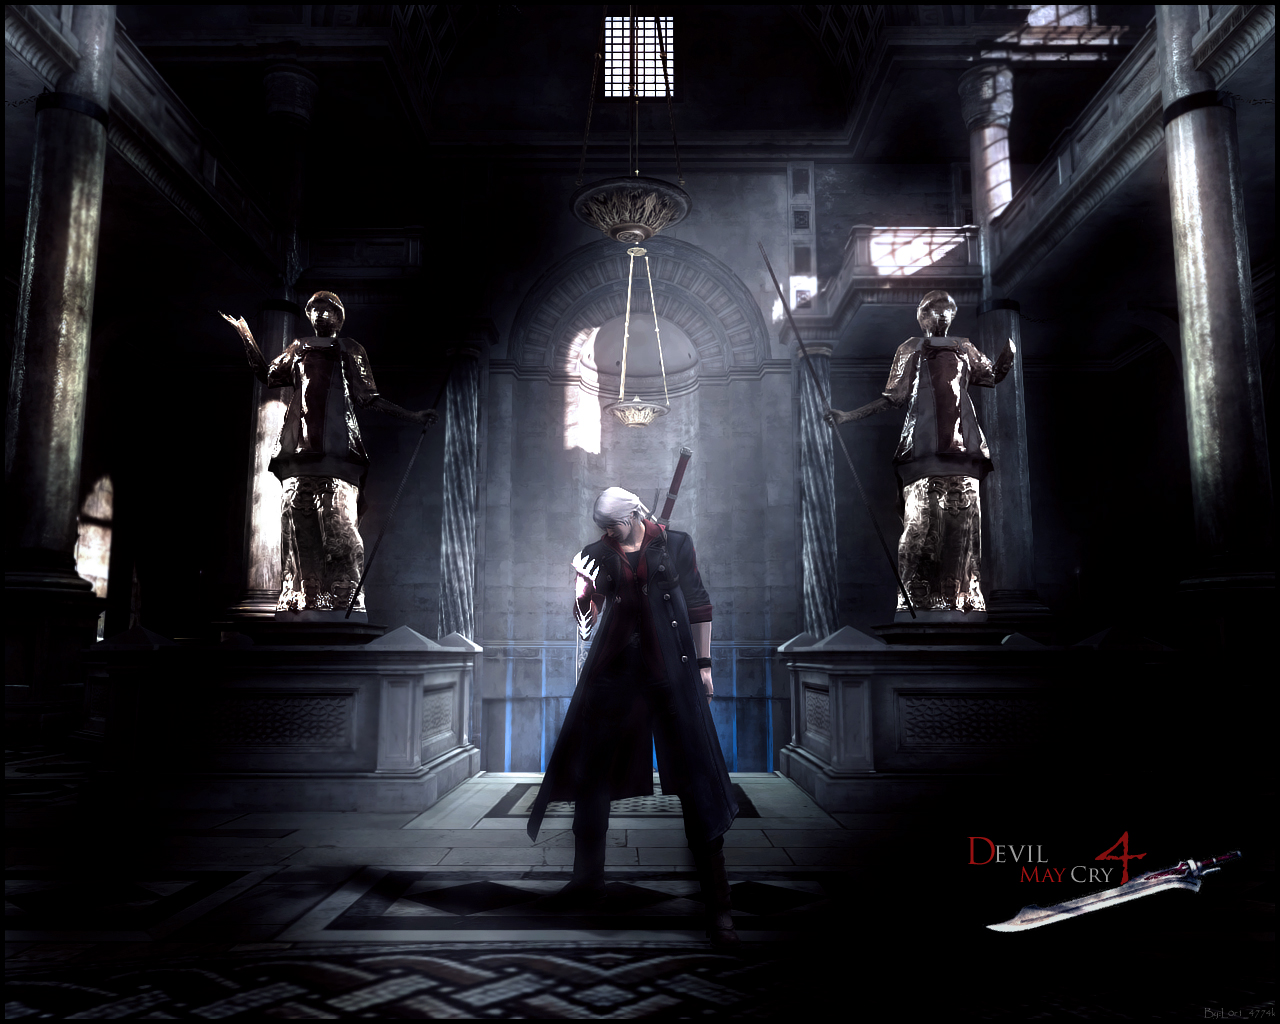 Image গেমস জোন ঃ Devil May Cry 4 Full ISO